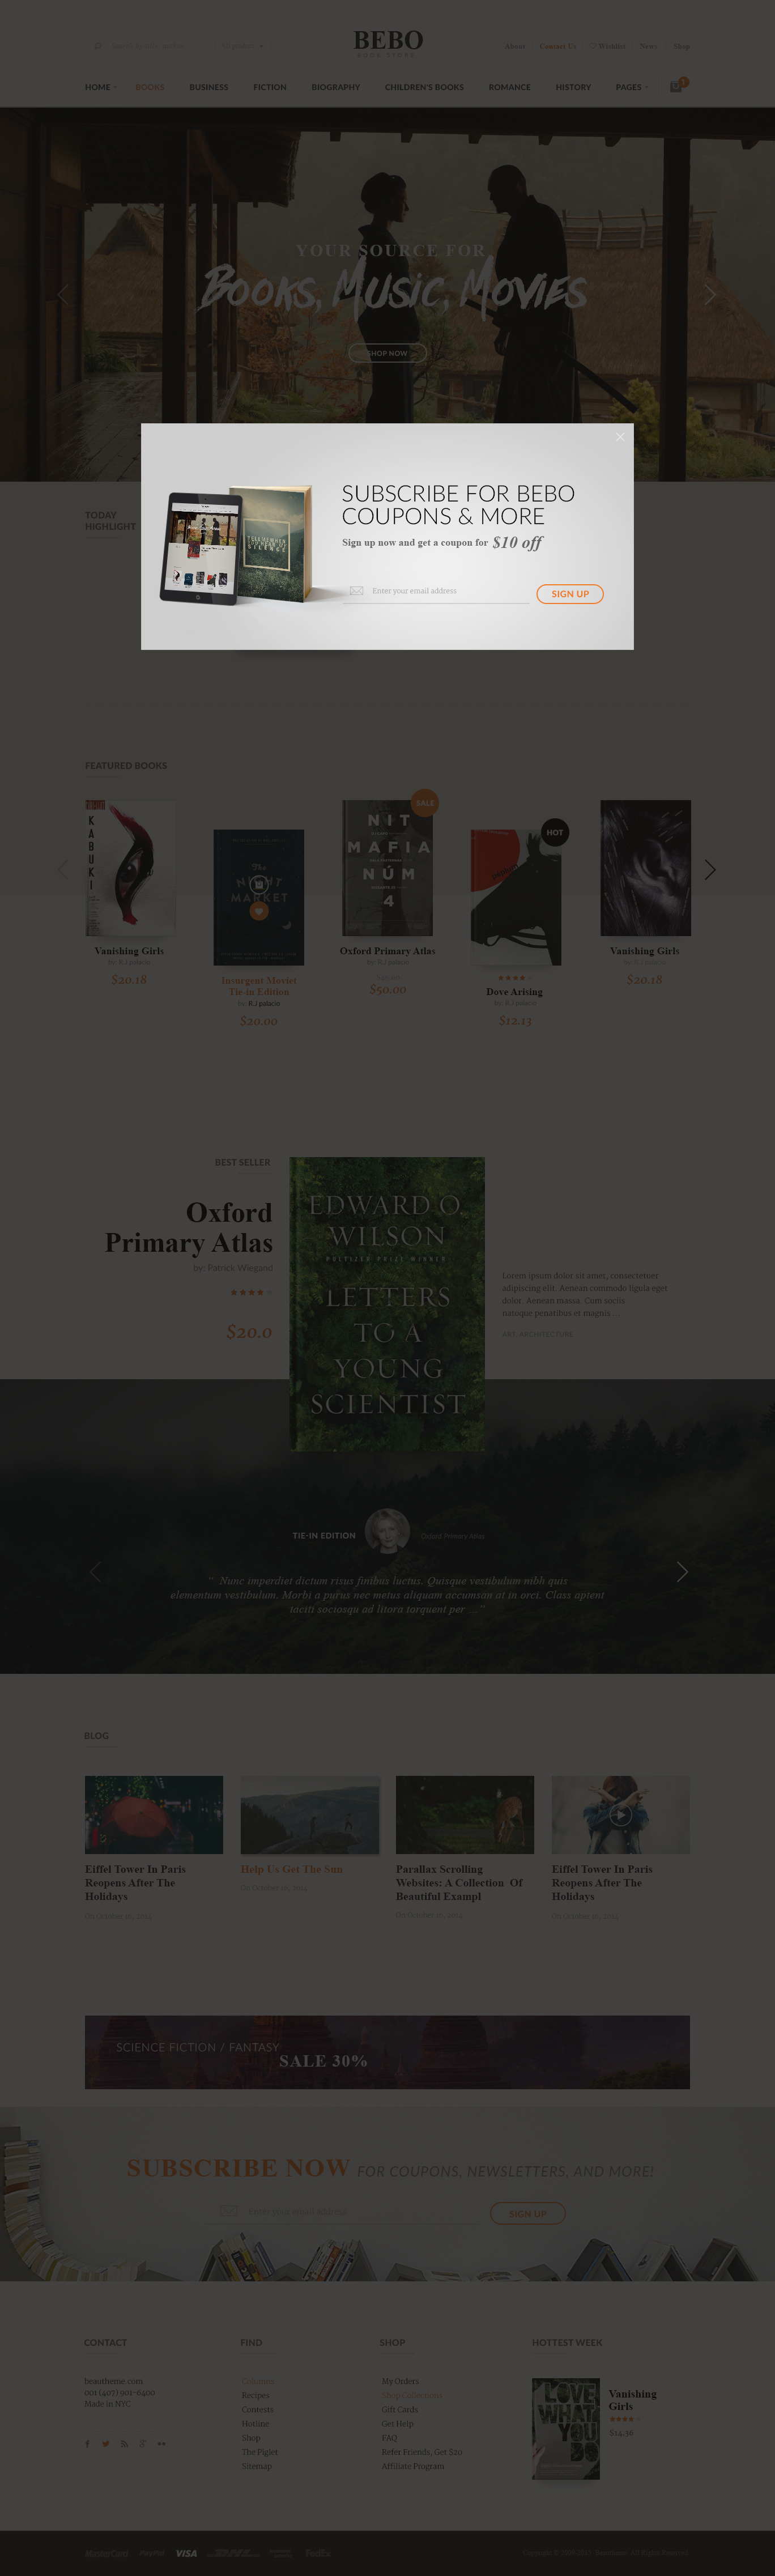 Bebo book issue cddvd store publish library wp by beautheme review01screenshotg fandeluxe Choice Image